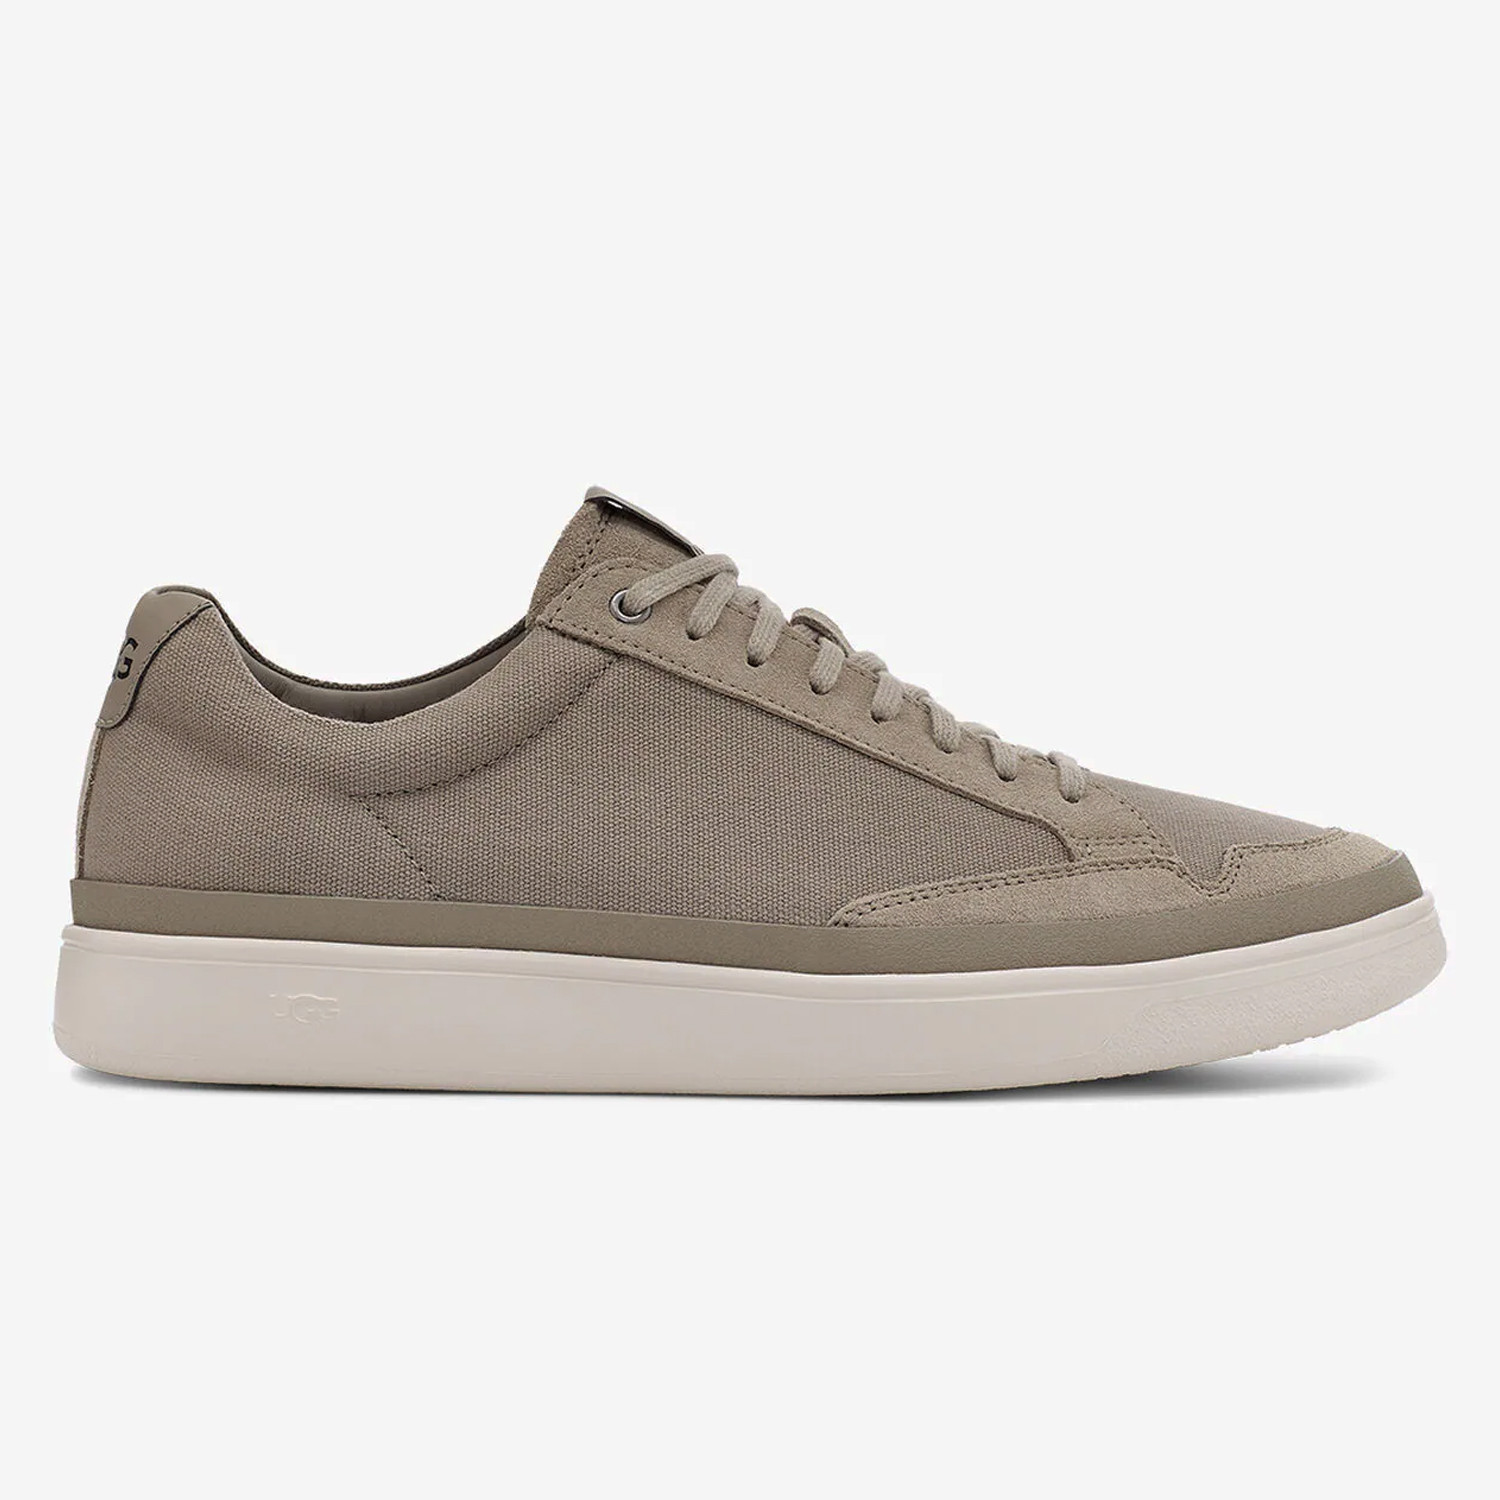 Ugg South Bay Sneaker Low Canvas (9000078636_52952)